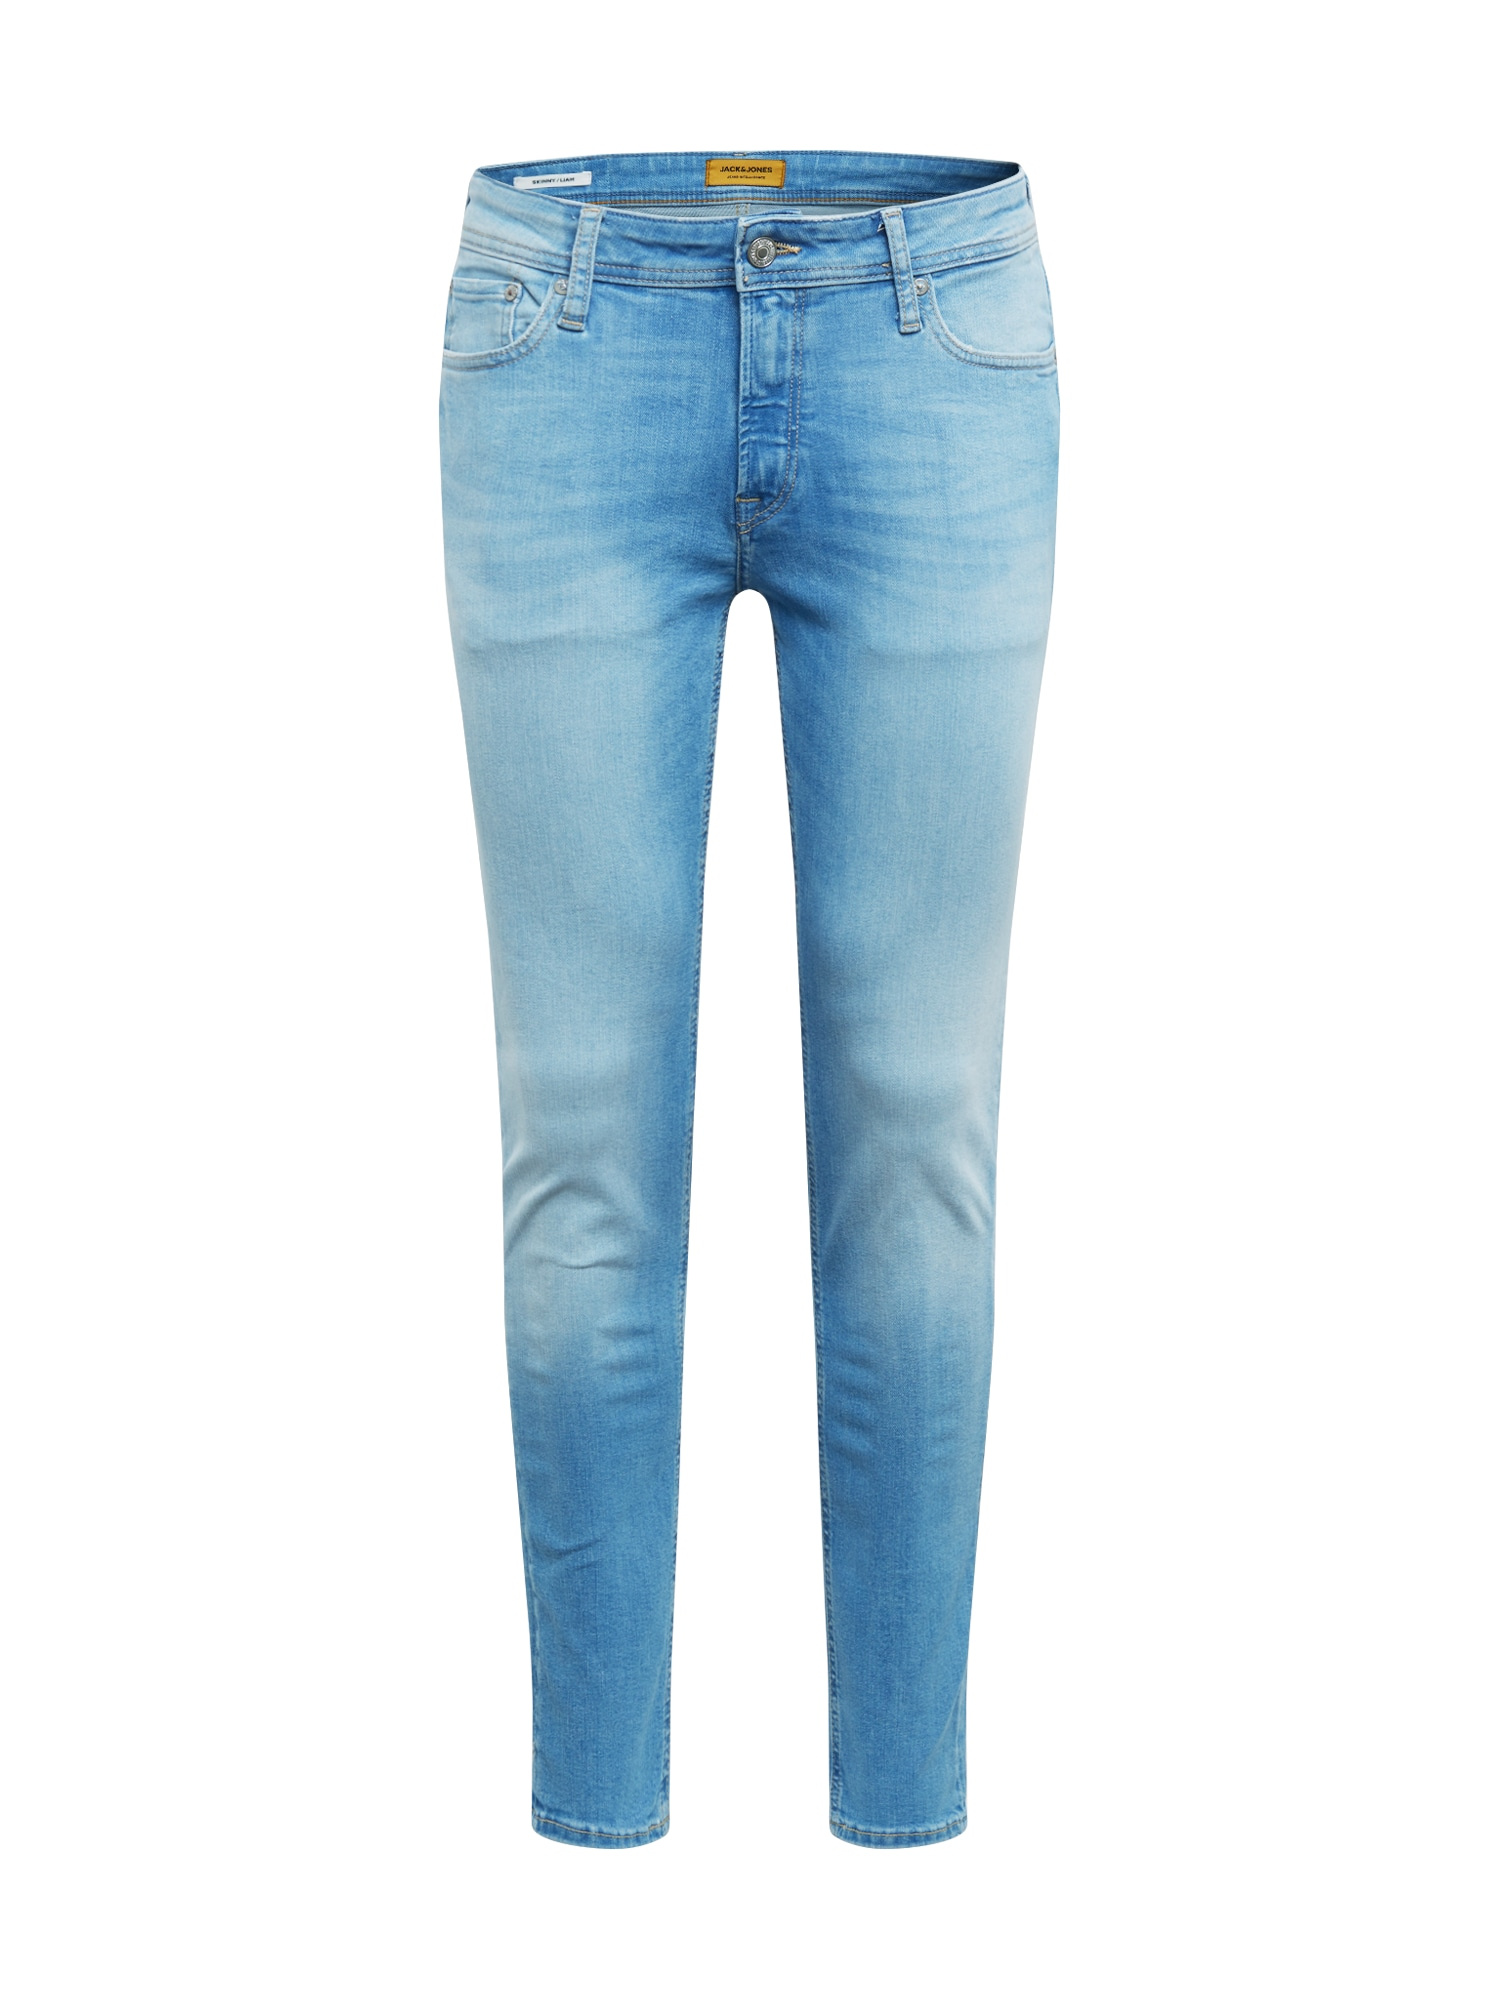 JACK & JONES Džínsy 'AGI 002 NOOS'  modrá denim